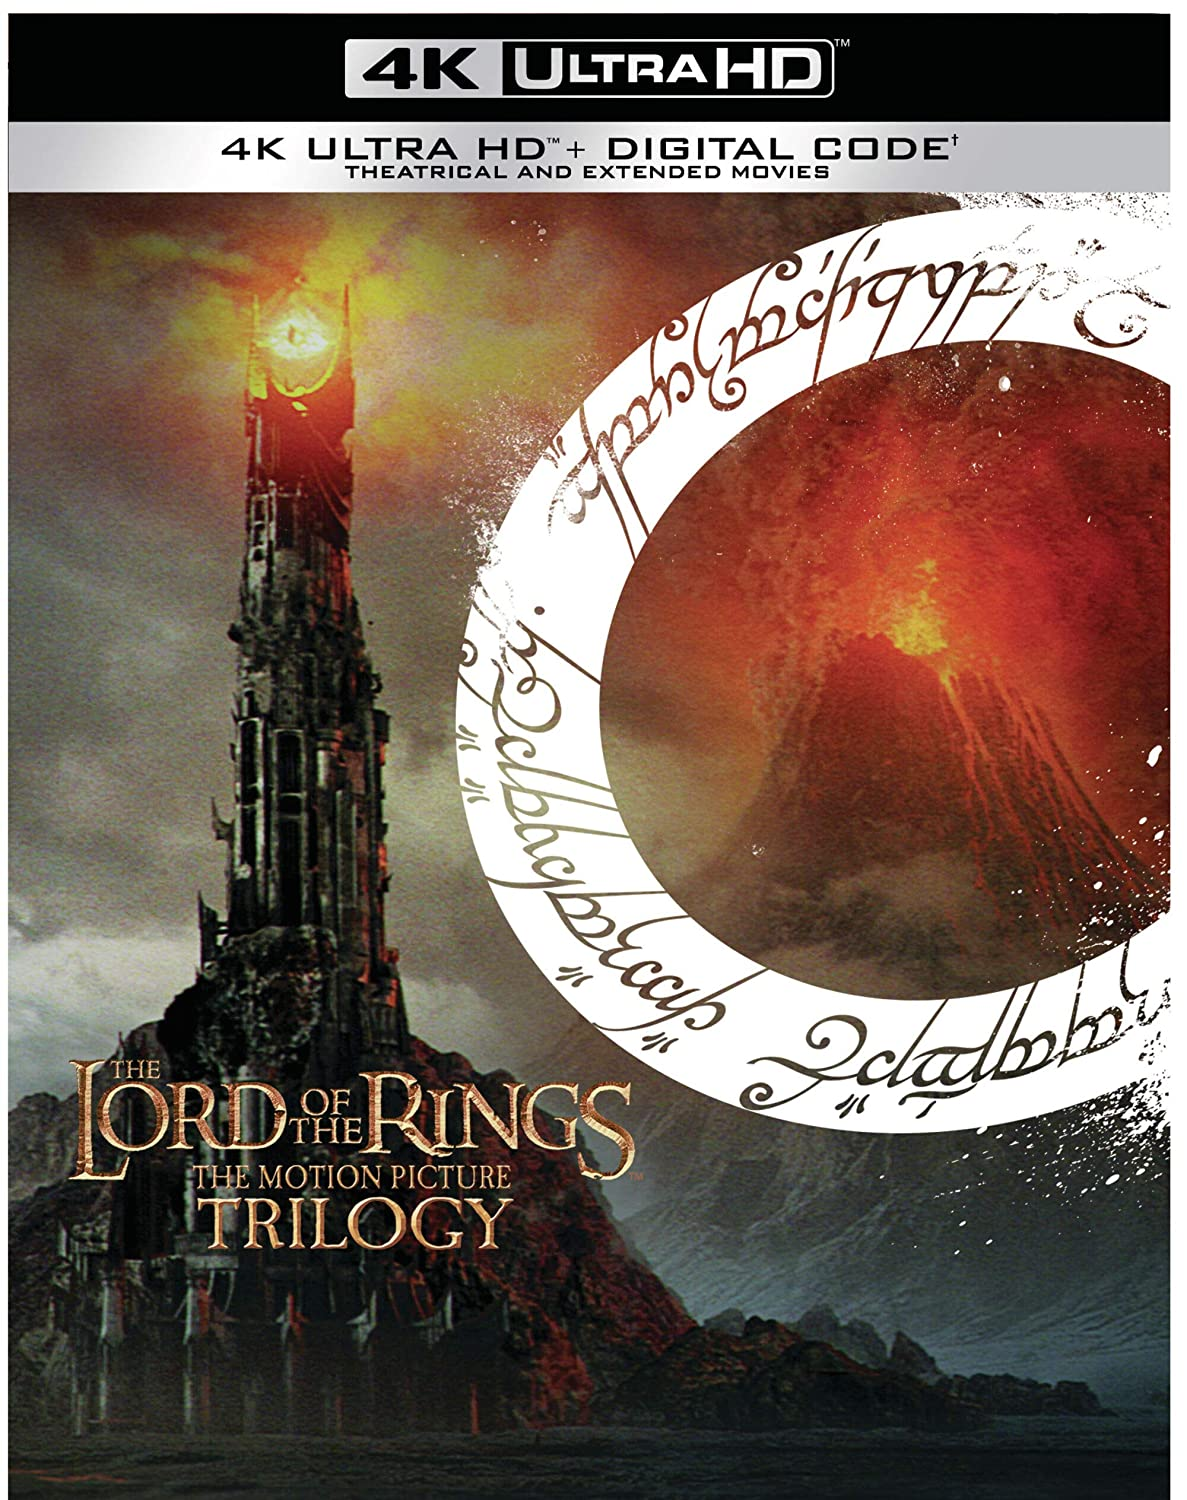 Lord Of The Rings The Motion Picture Trilogy Extended Theatrical 4k Ultra Hd Digital Blu Ray Mark Ordesky Barrie M Osborne Peter Jackson Bob Weinstein Fran Walsh Harvey Weinstein Tim Sanders